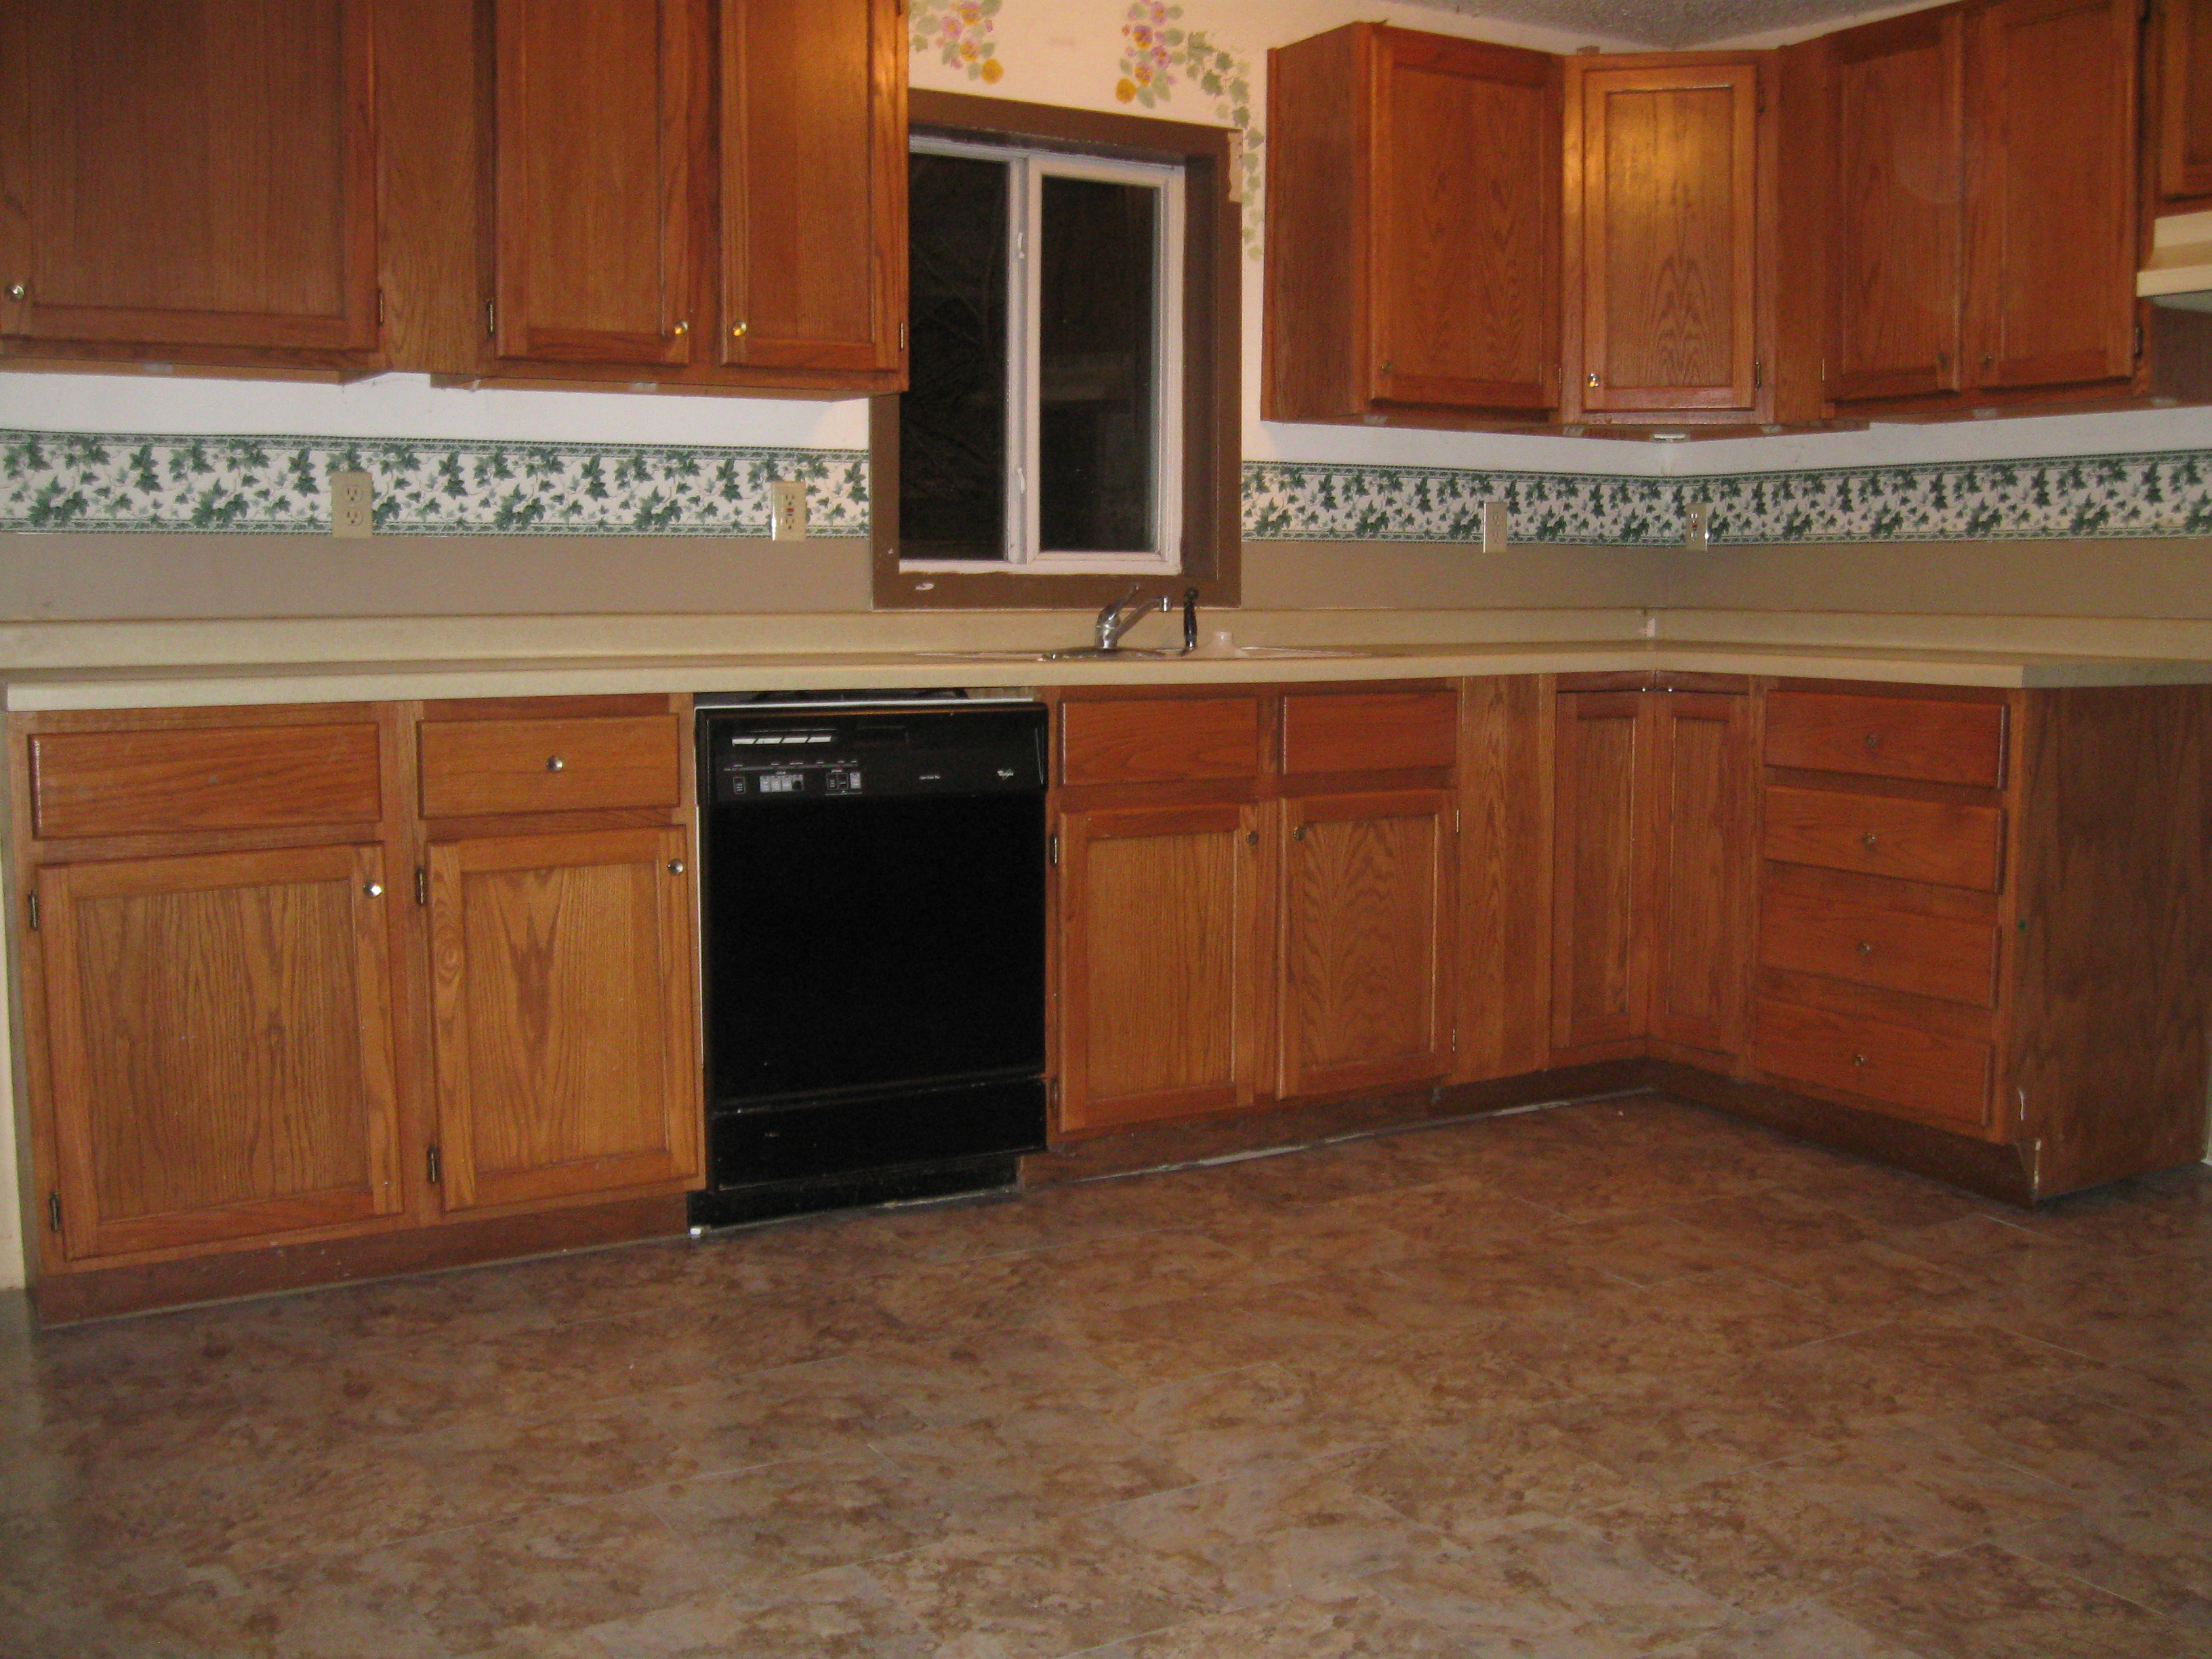 Spacious Cottage Style Home Near Mead Park And Wisconsin River # Craigslist Muebles Waukesha Wi